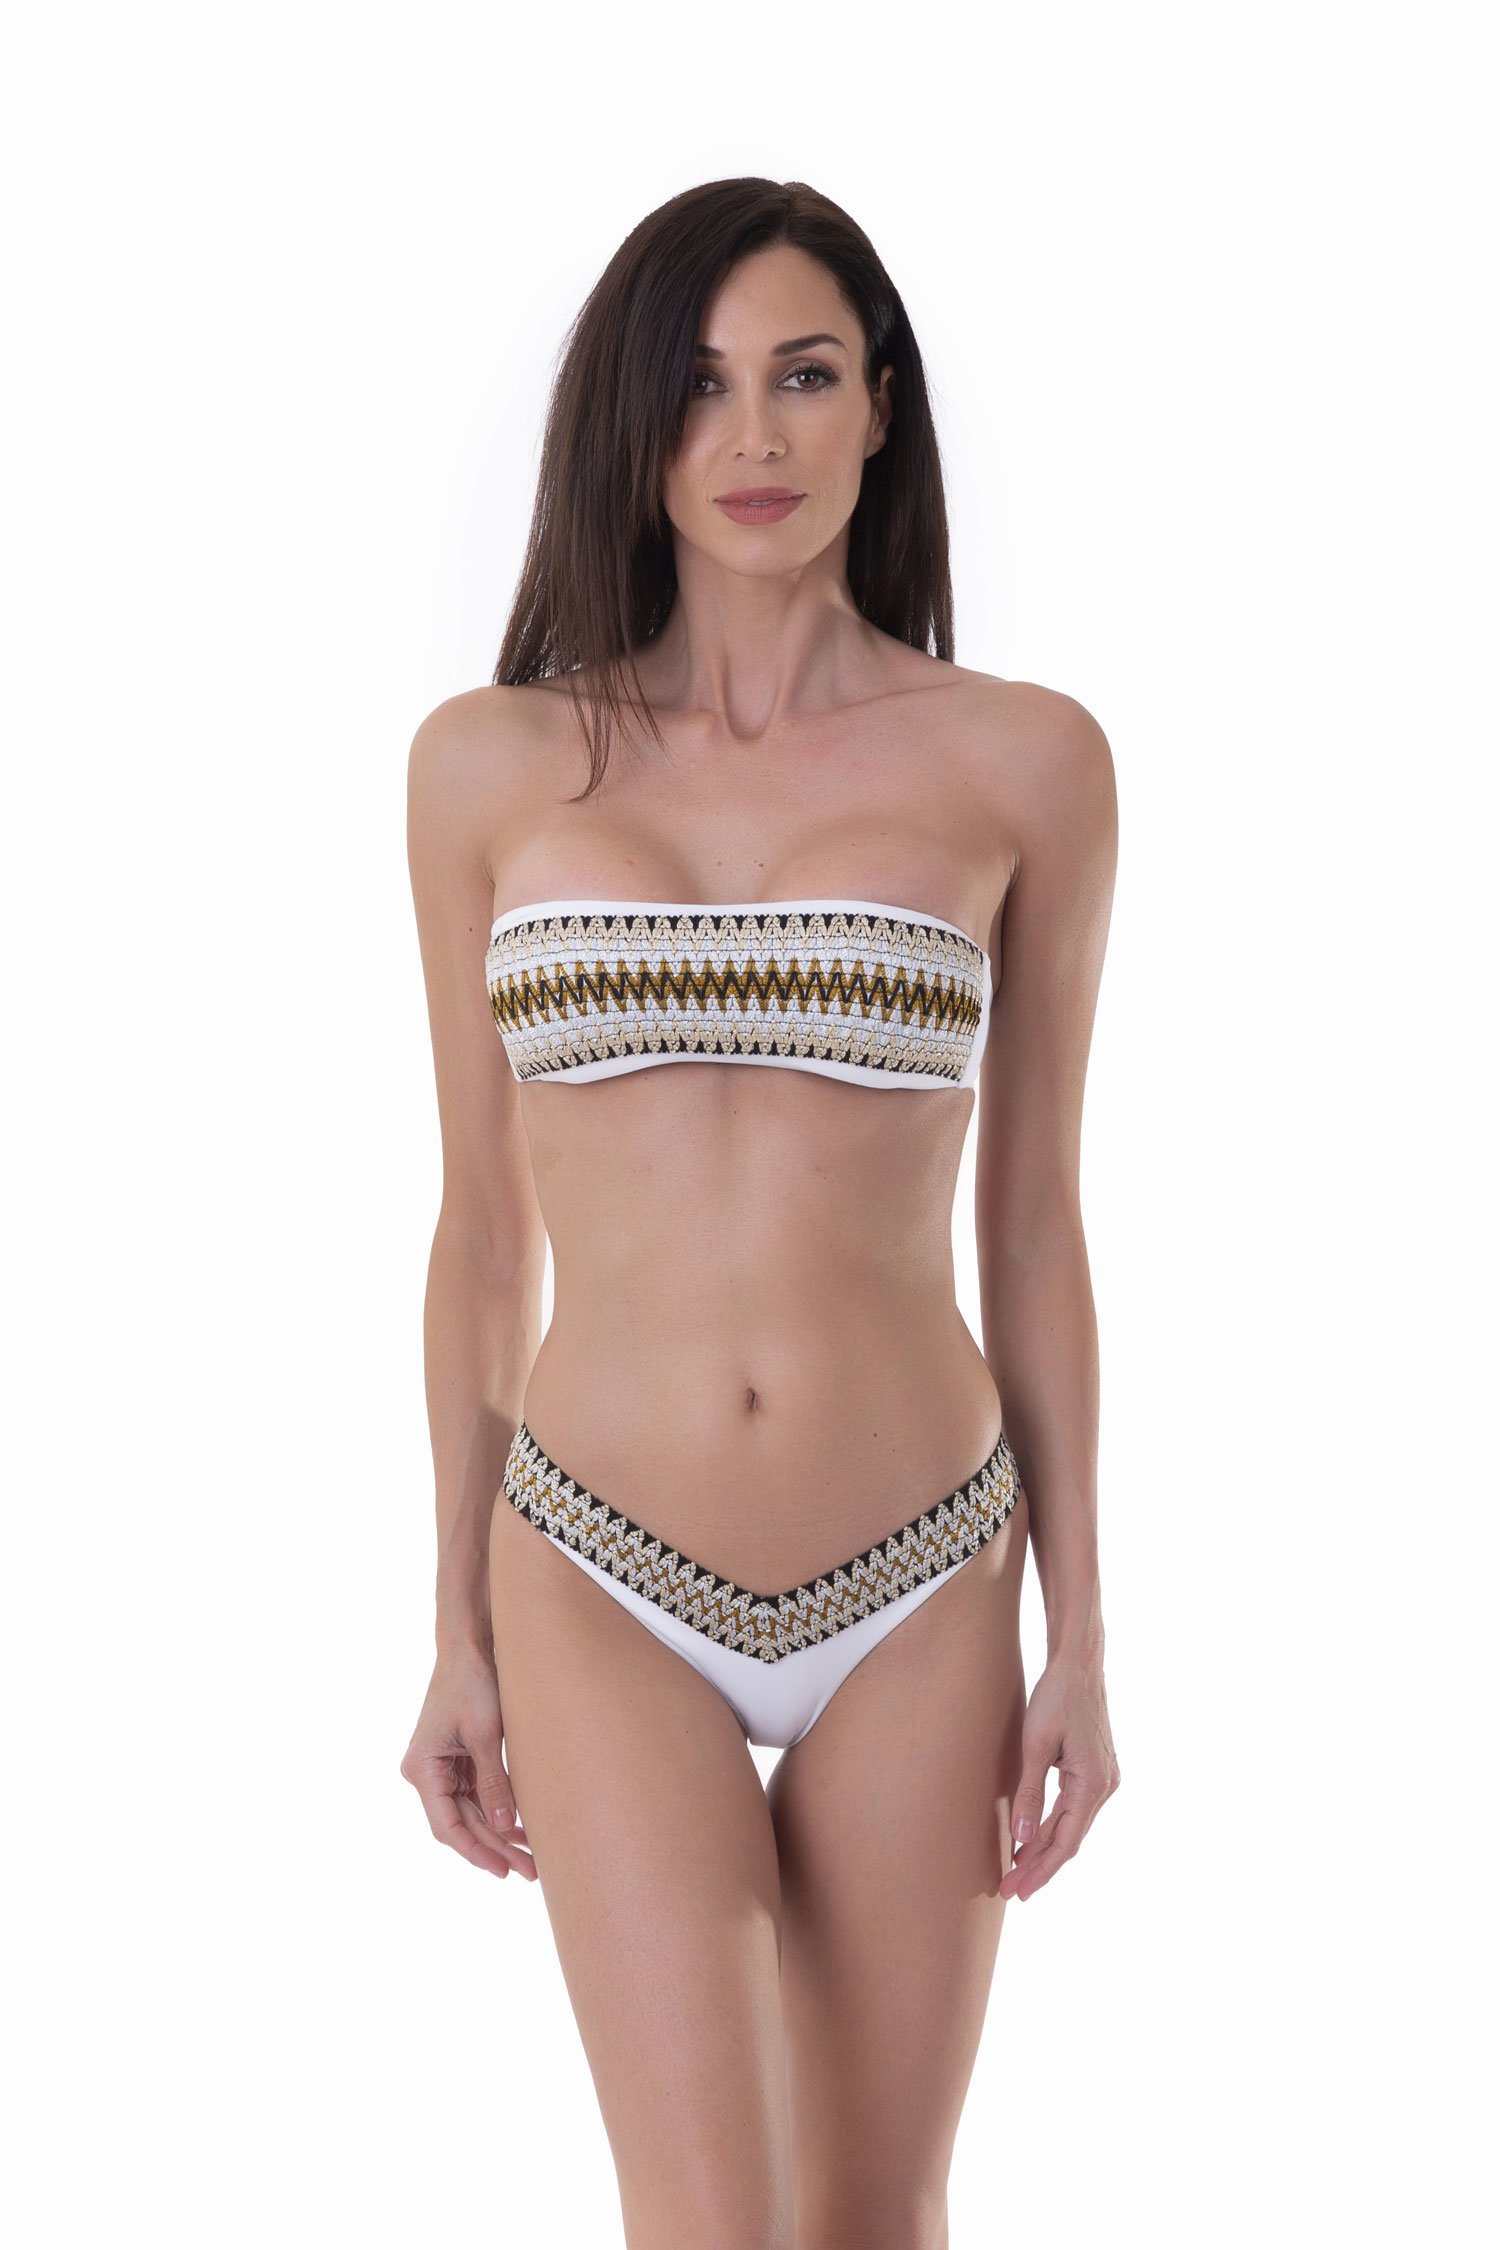 BANDEAU BIKINI WITH LUREX ELASTICS AND HIGH-LEG BOTTOM - Bianco White 001